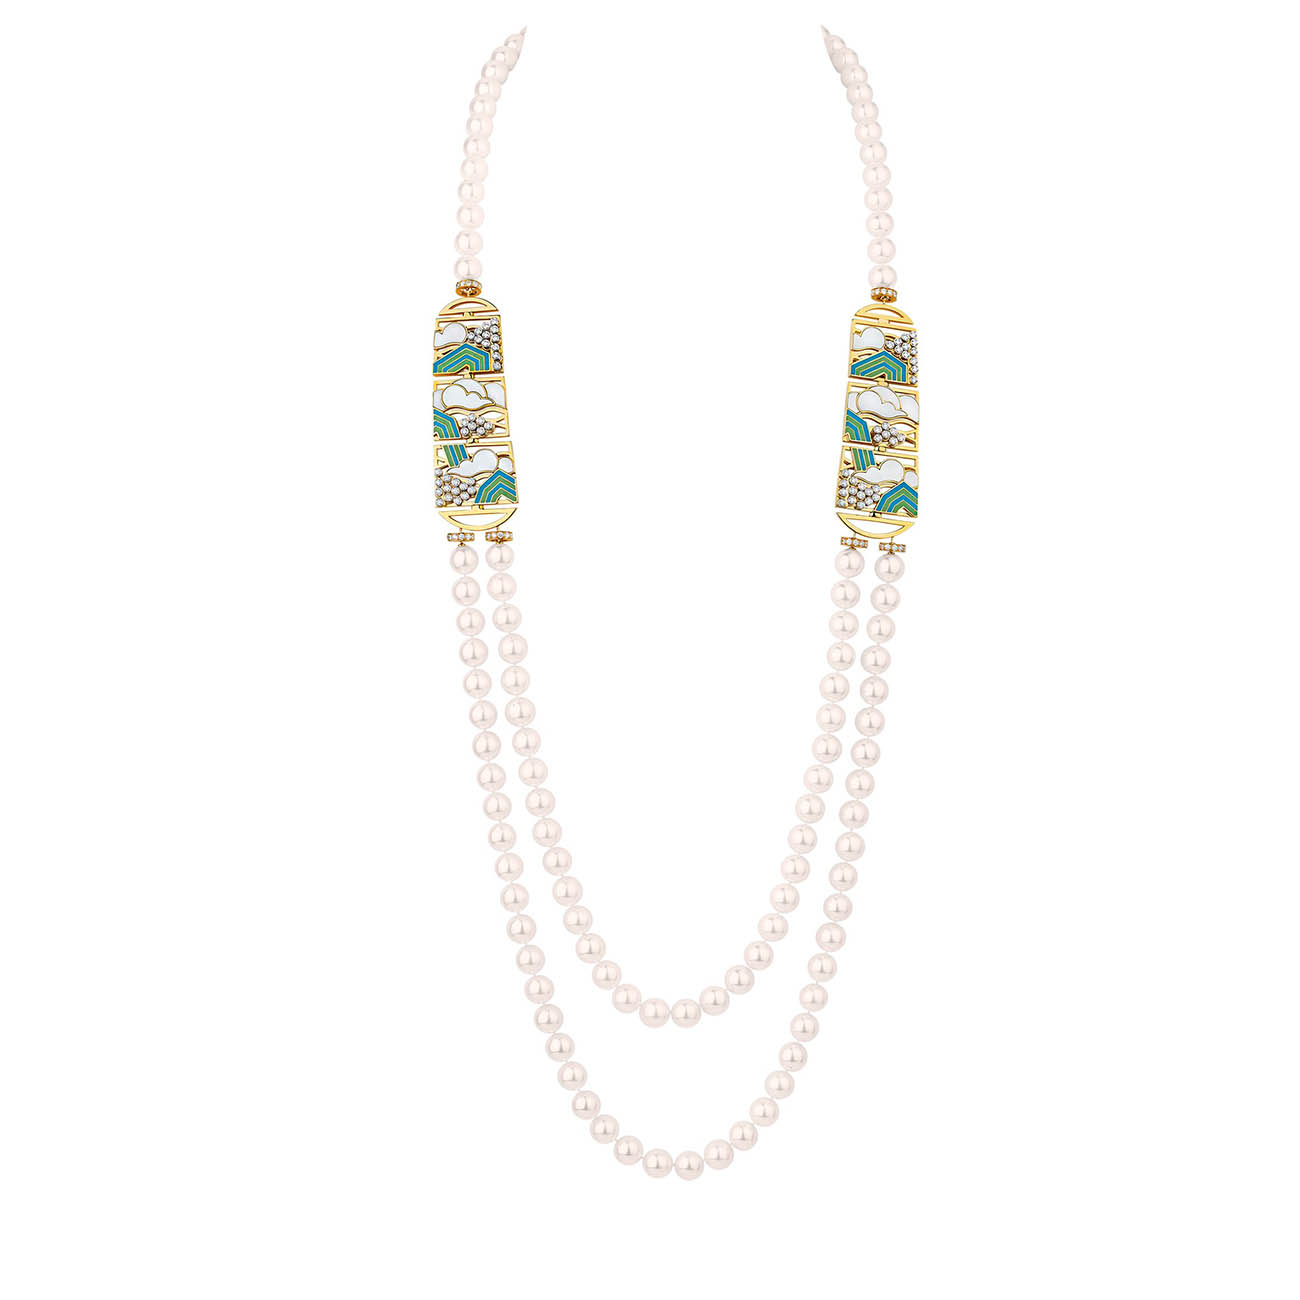 CHANEL COROMANDEL Collier Vibration Minérale Pearl Necklace